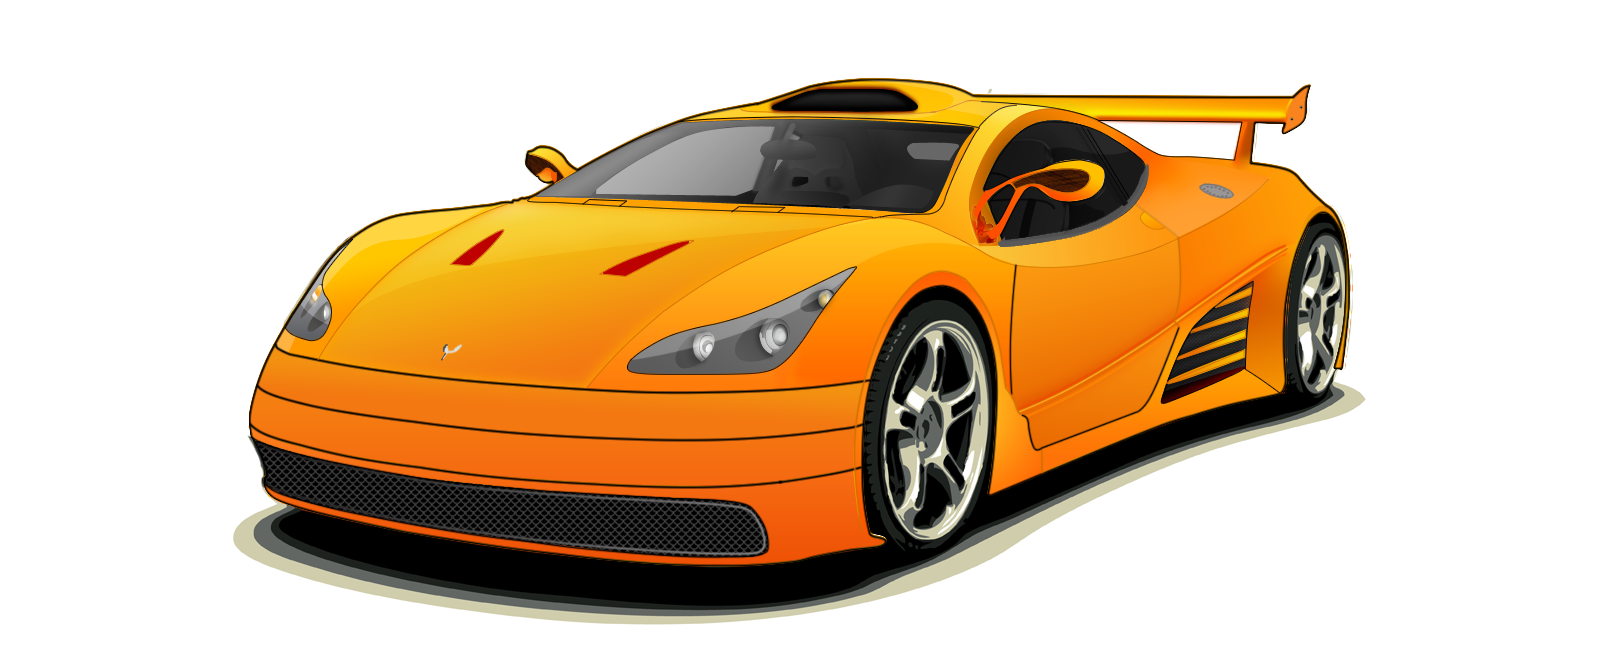 mercial Gallery together with Orange Race Car Clipart additionally Bru tes Behind The Wheel moreover 1096622 midlife Crisis Cars Men Want Black Sporty Women Want Red Practical besides Hot Rod Coupes And Babes. on lexus car wash